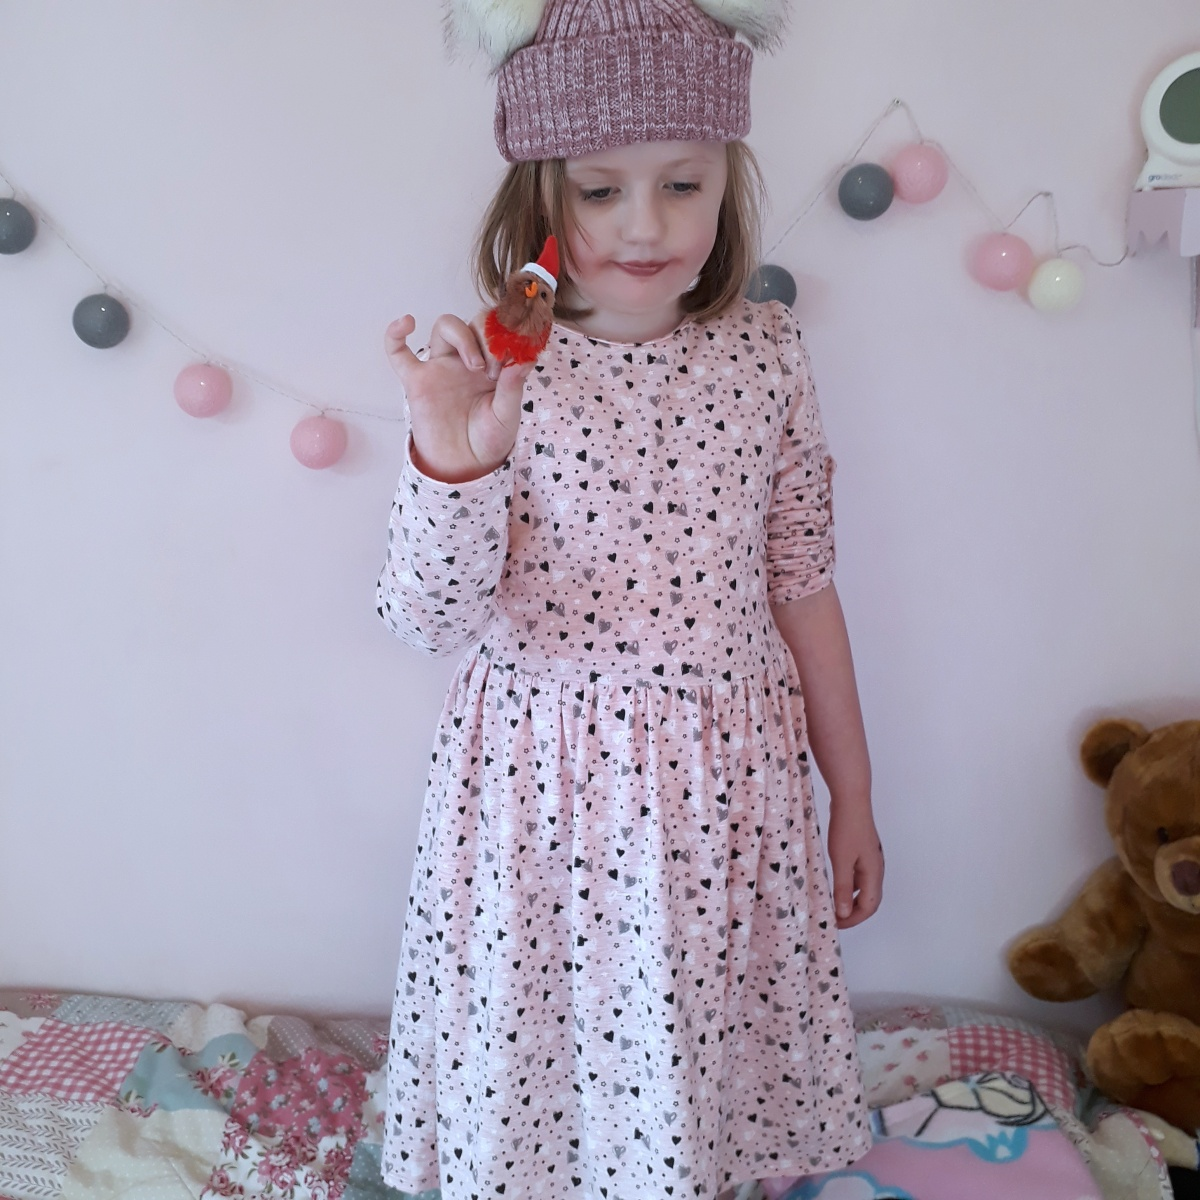 The Kensington Dress by Hey June Patterns - the perfect girls dress!?